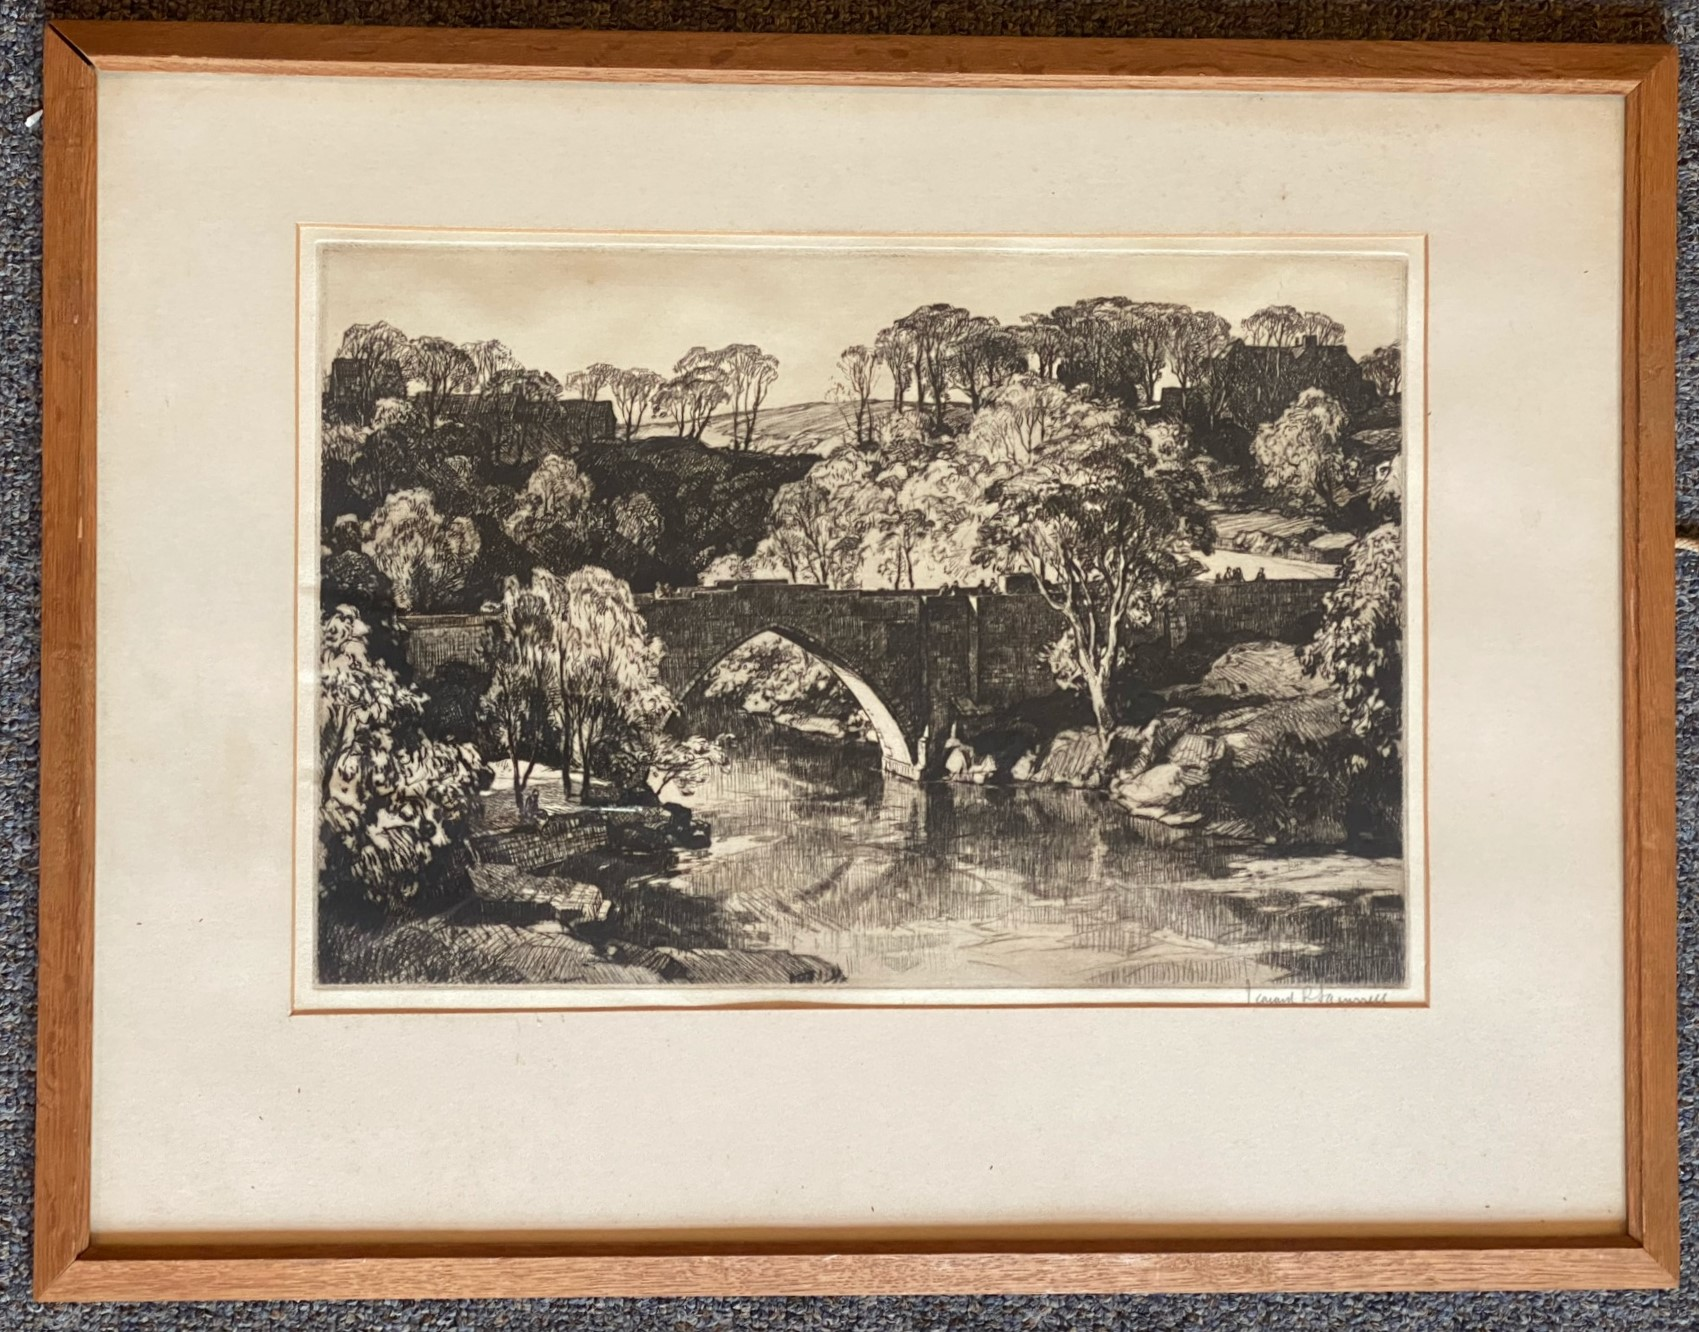 Leonard Russell Squirrel (RWS, RE, RI, PS, SGA 1893-1979) signed etching Brig O'Gowrie Deeside - Image 2 of 3